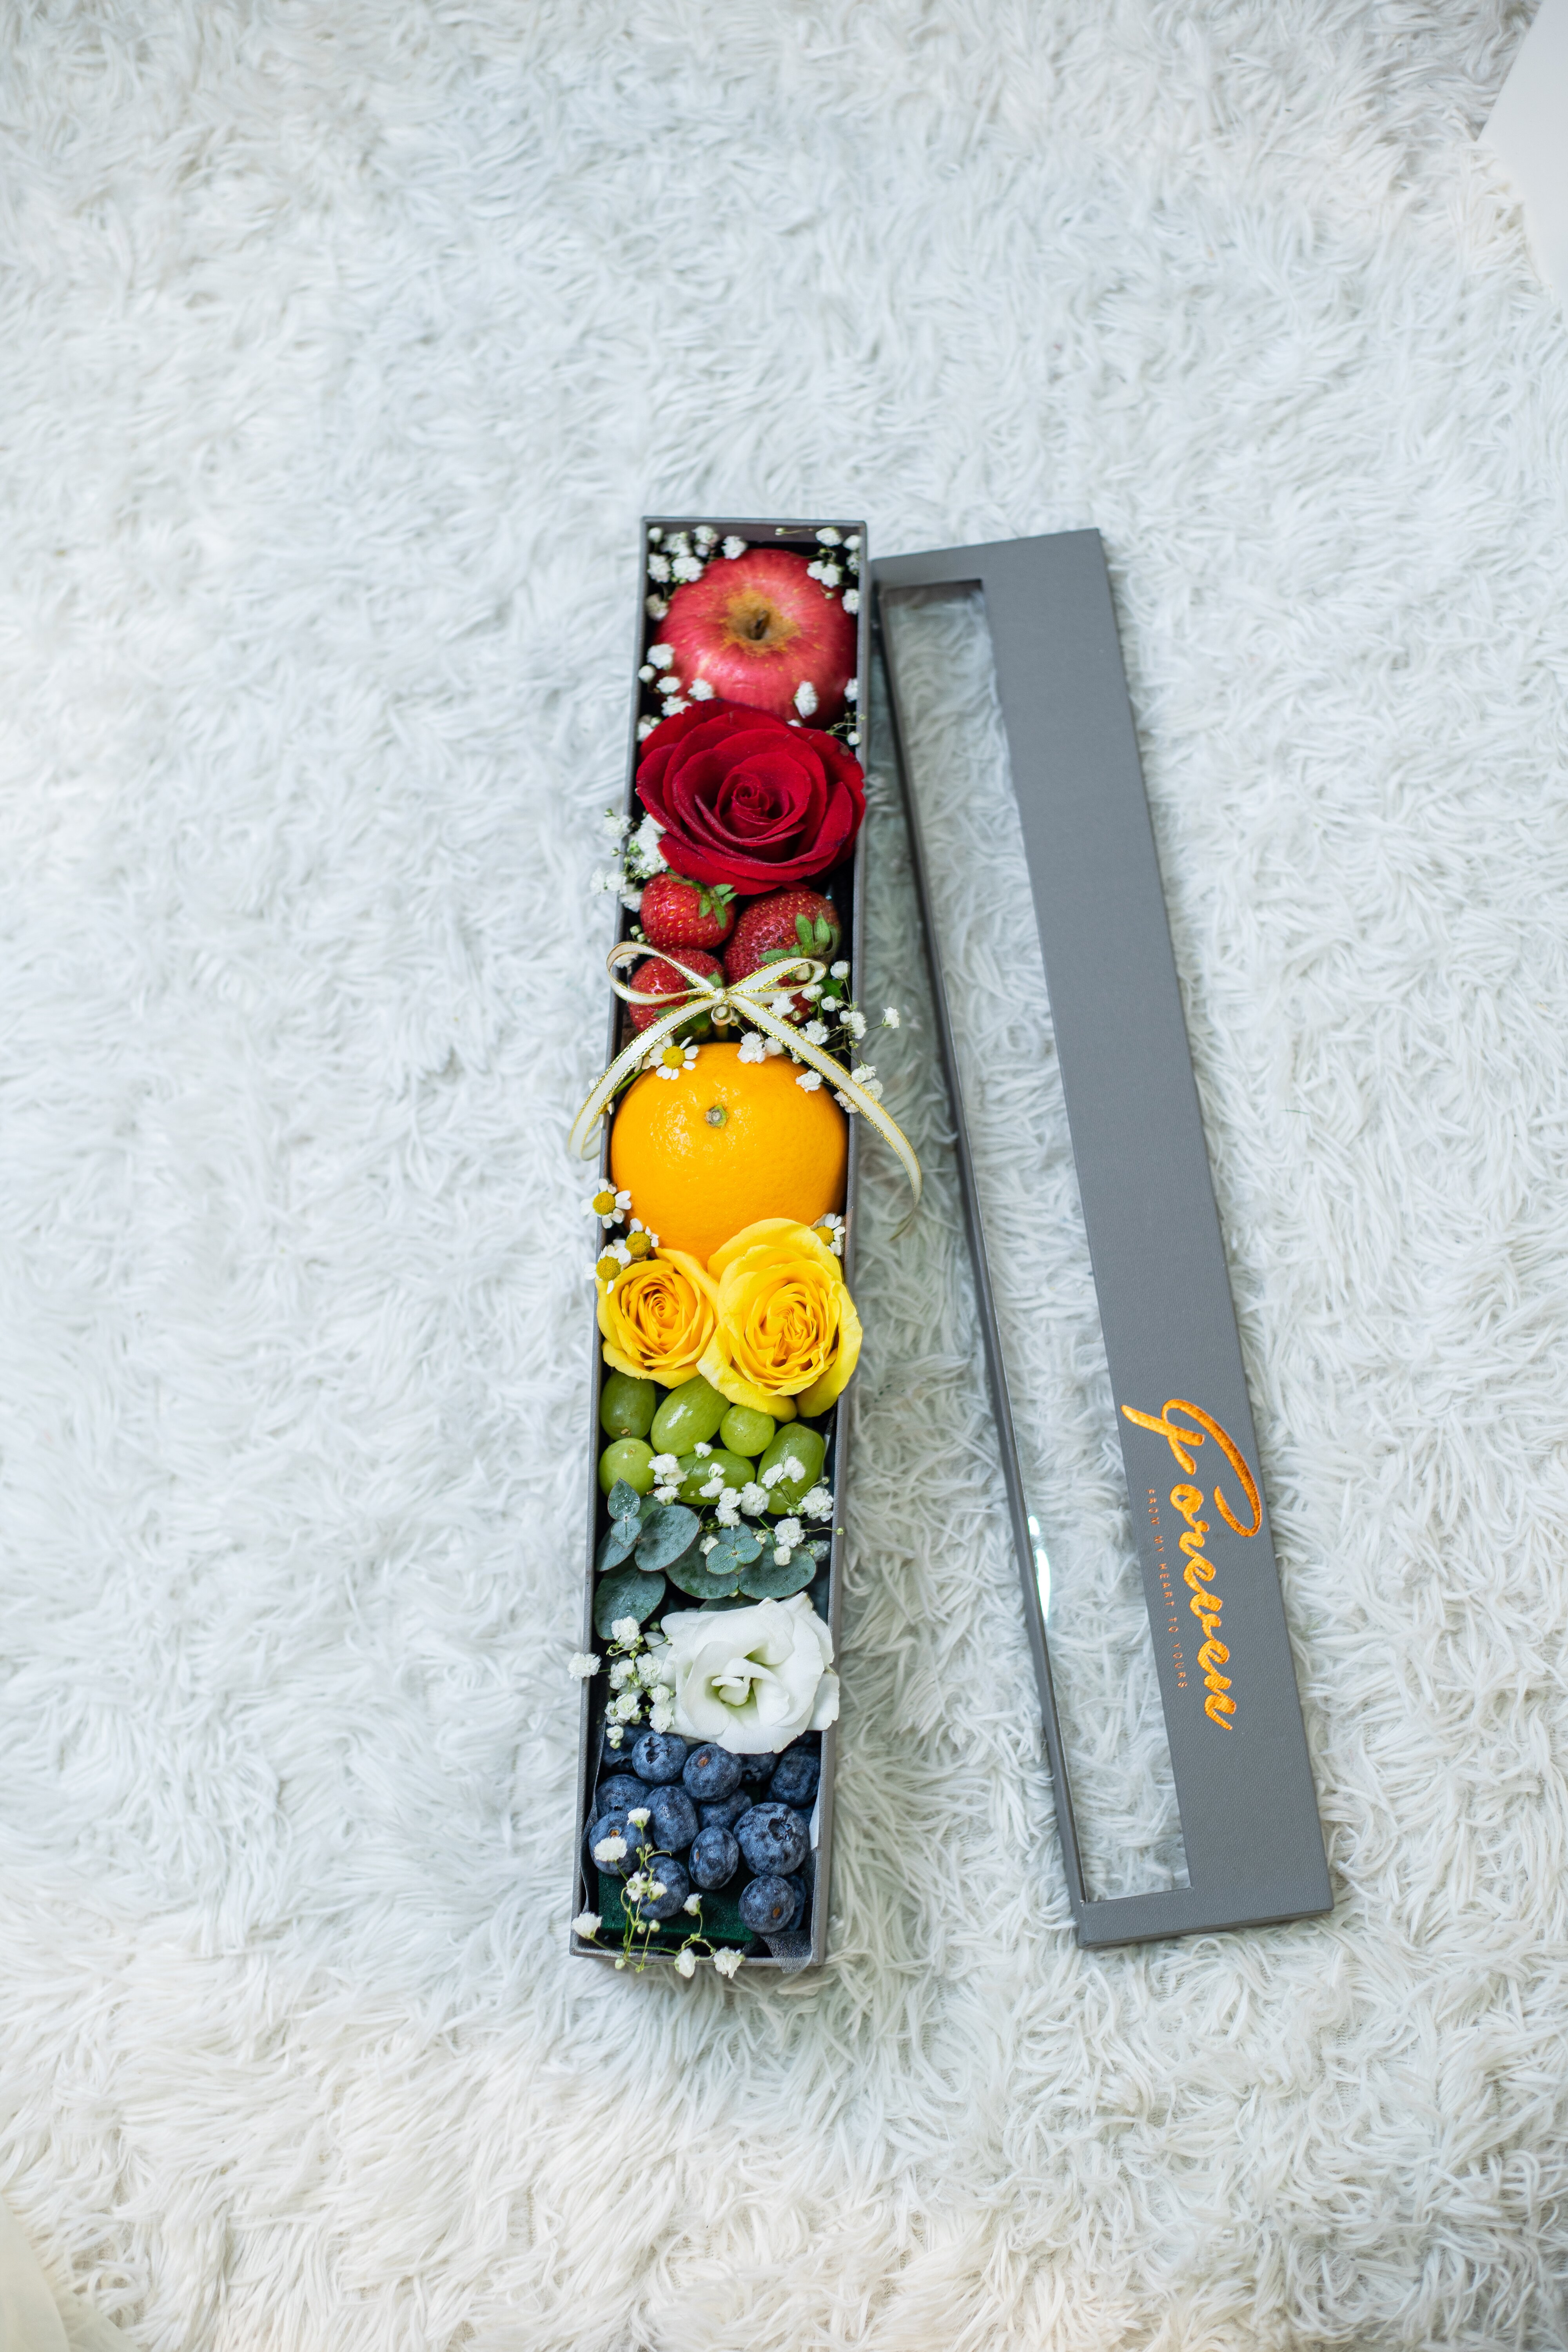 Colourfruit Greetings - Freeland Floral 自由花苑